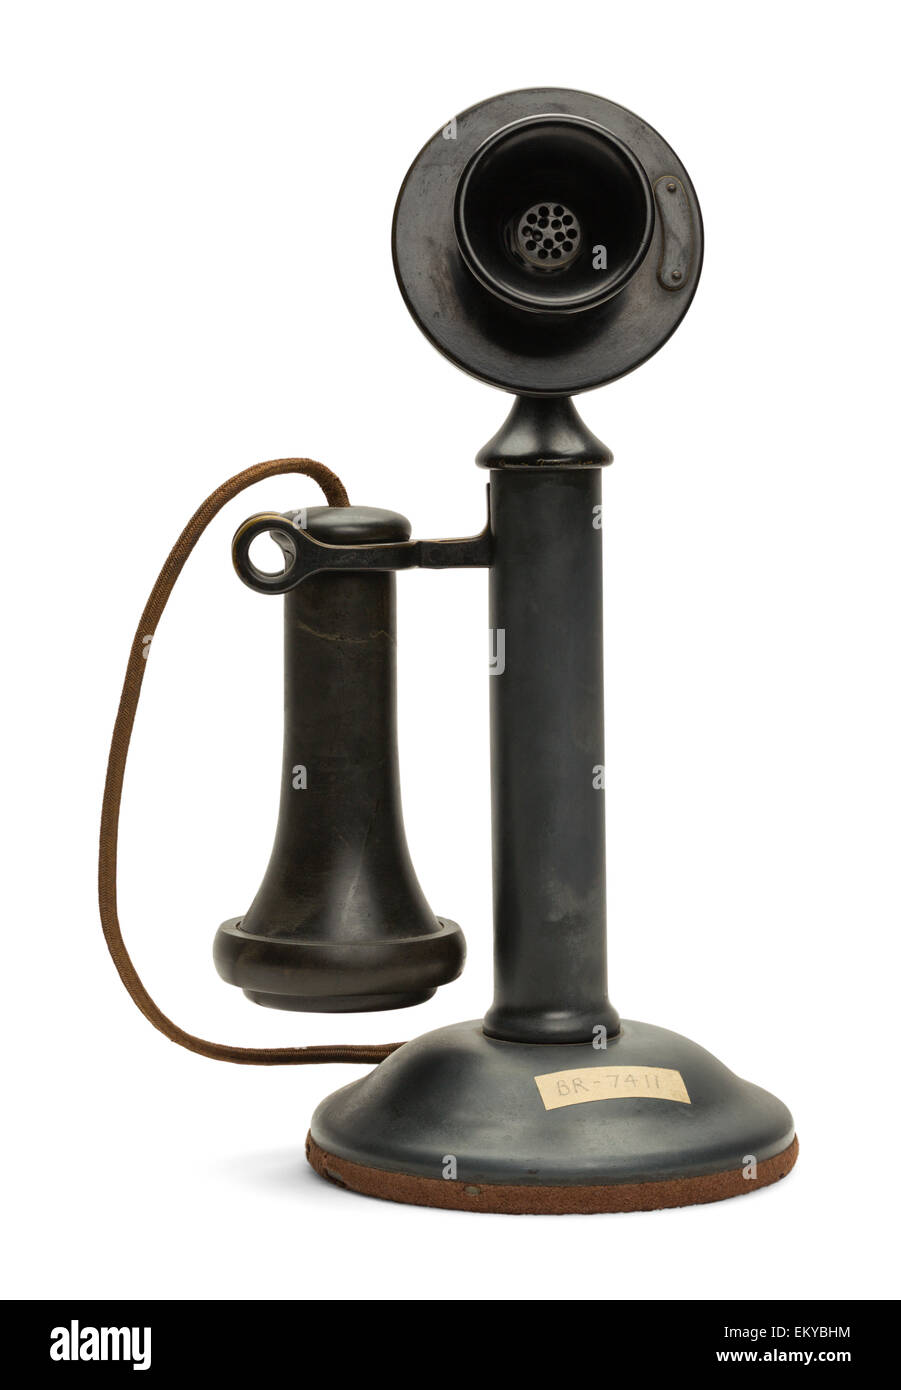 Black Antique Old Phone Isolated on White Background. - Stock Image